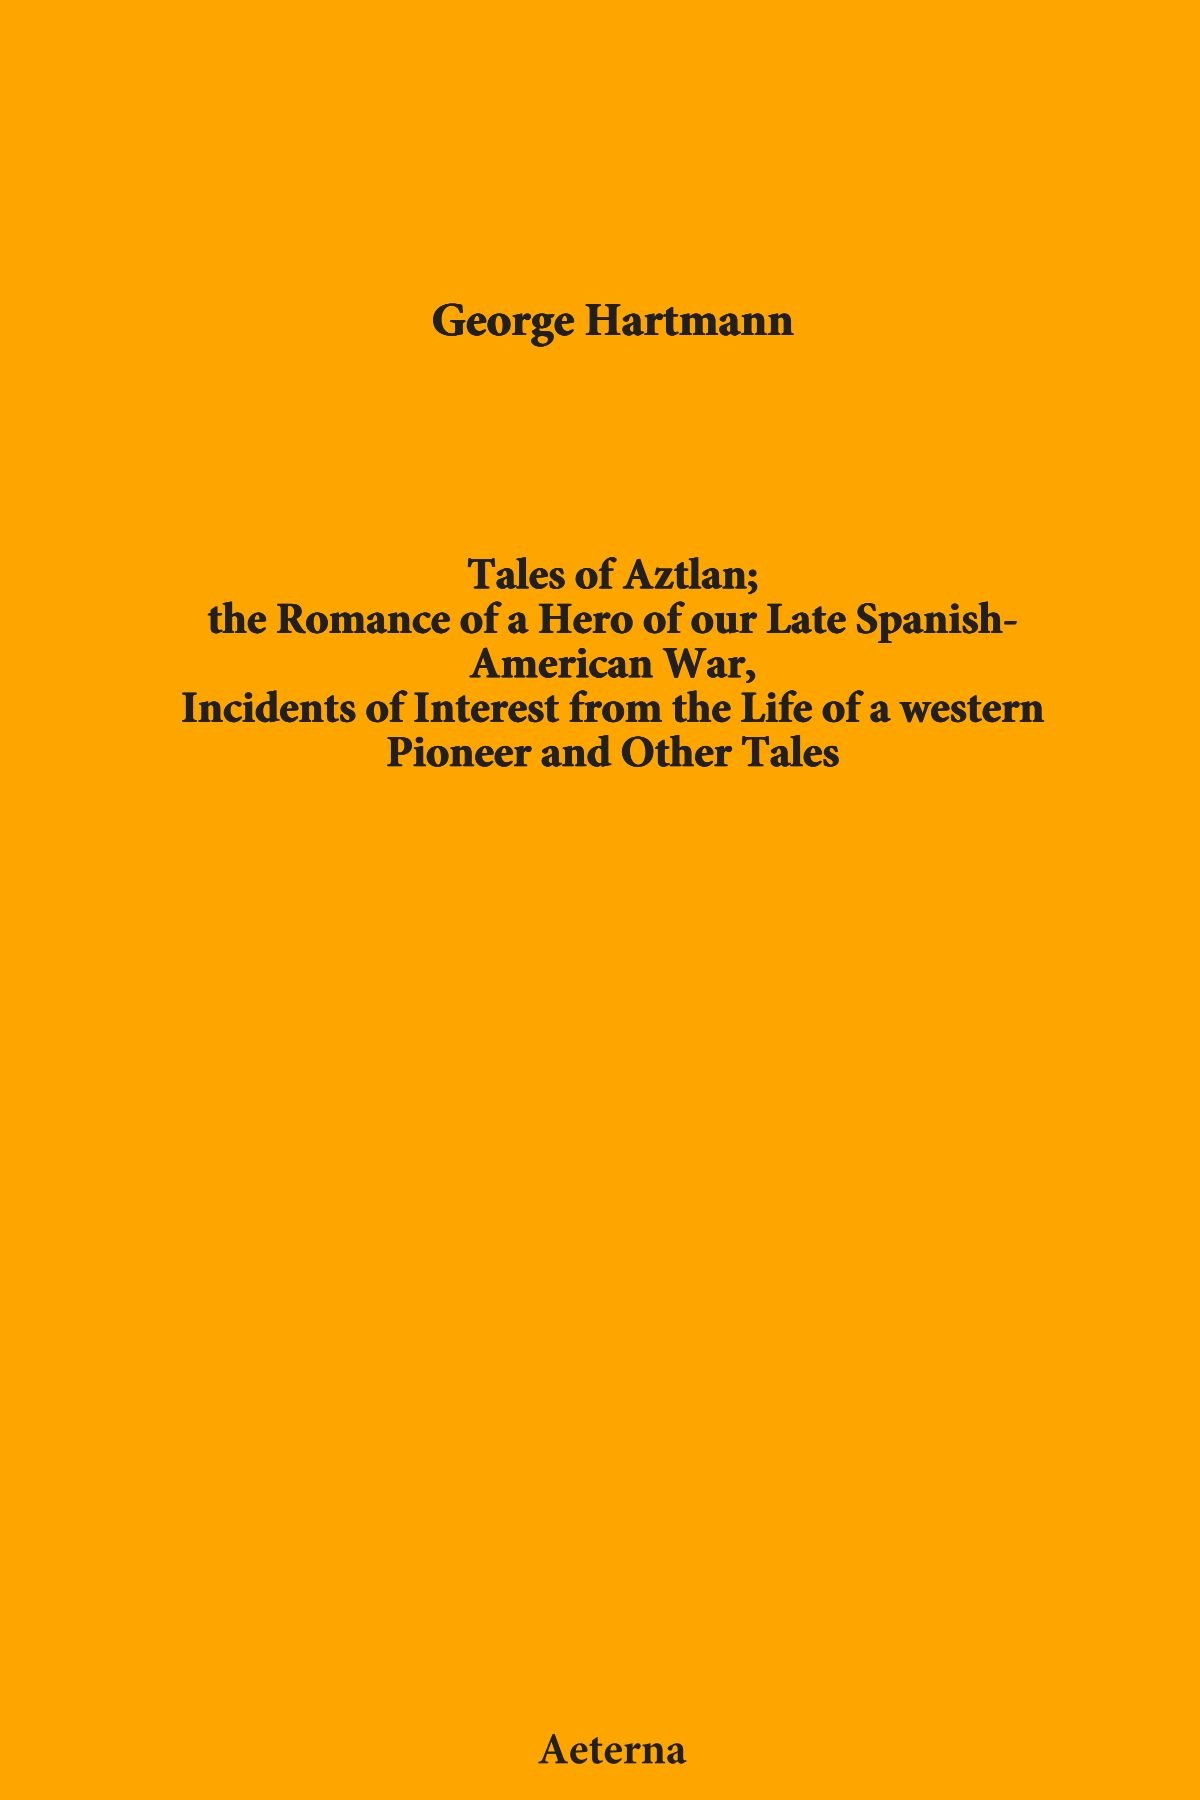 Download Tales of Aztlan; the Romance of a Hero of our Late Spanish-American War, Incidents of Interest from the Life of a western Pioneer and Other Tales pdf epub